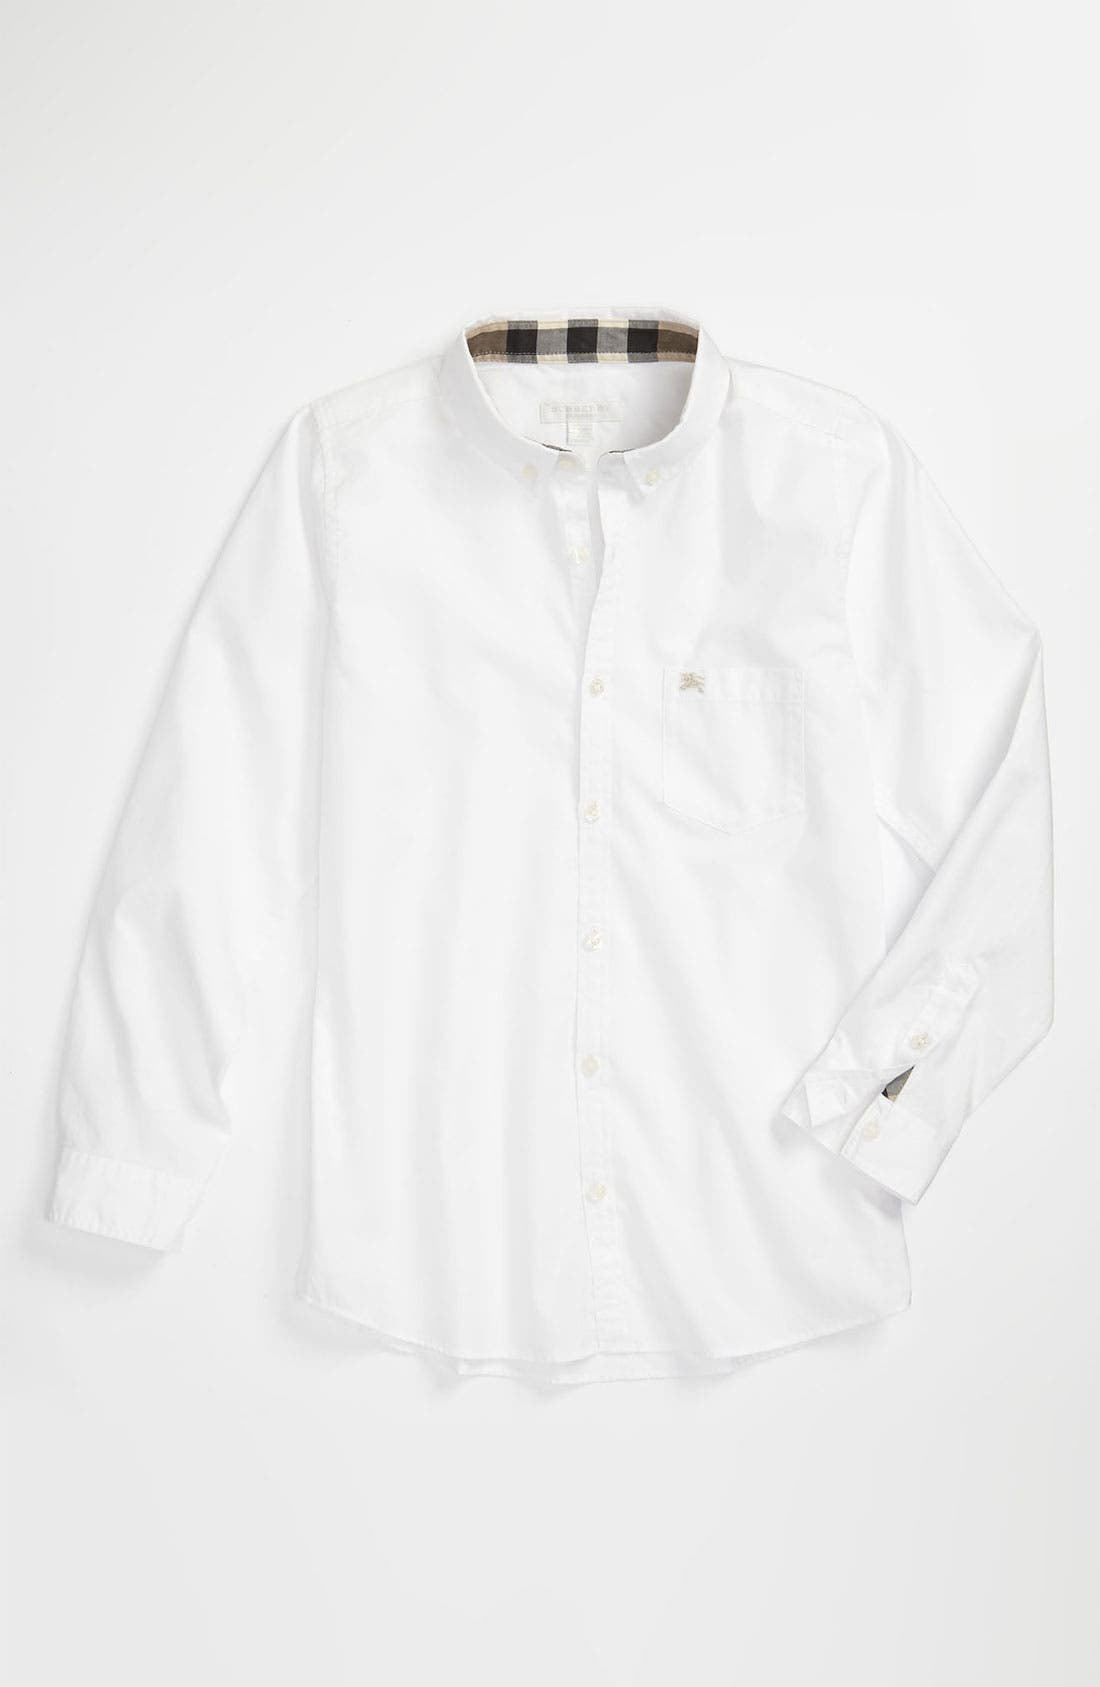 Alternate Image 1 Selected - Burberry Oxford Shirt (Little Boys)